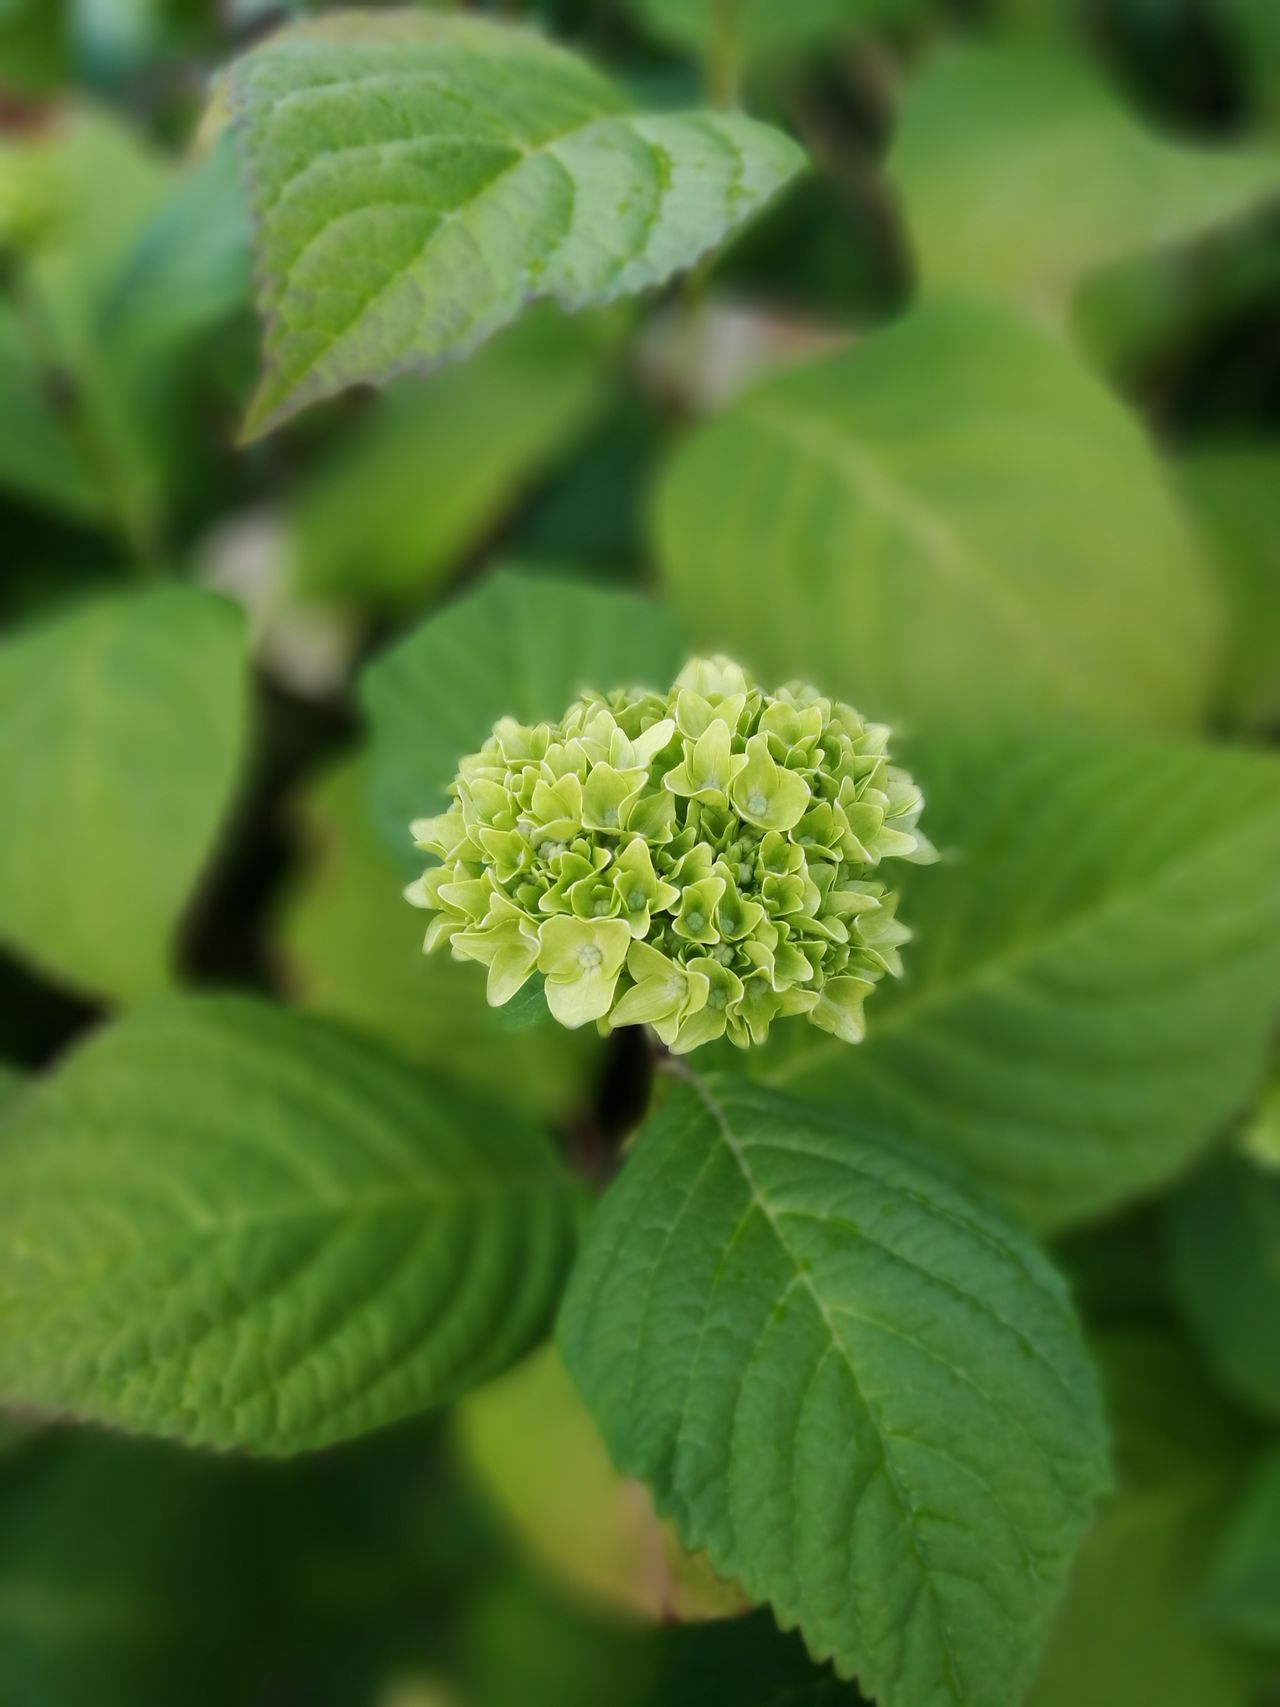 Flower Greenery Nature_collection Leaf Flowers Plants Collection Garden Garden Flowers